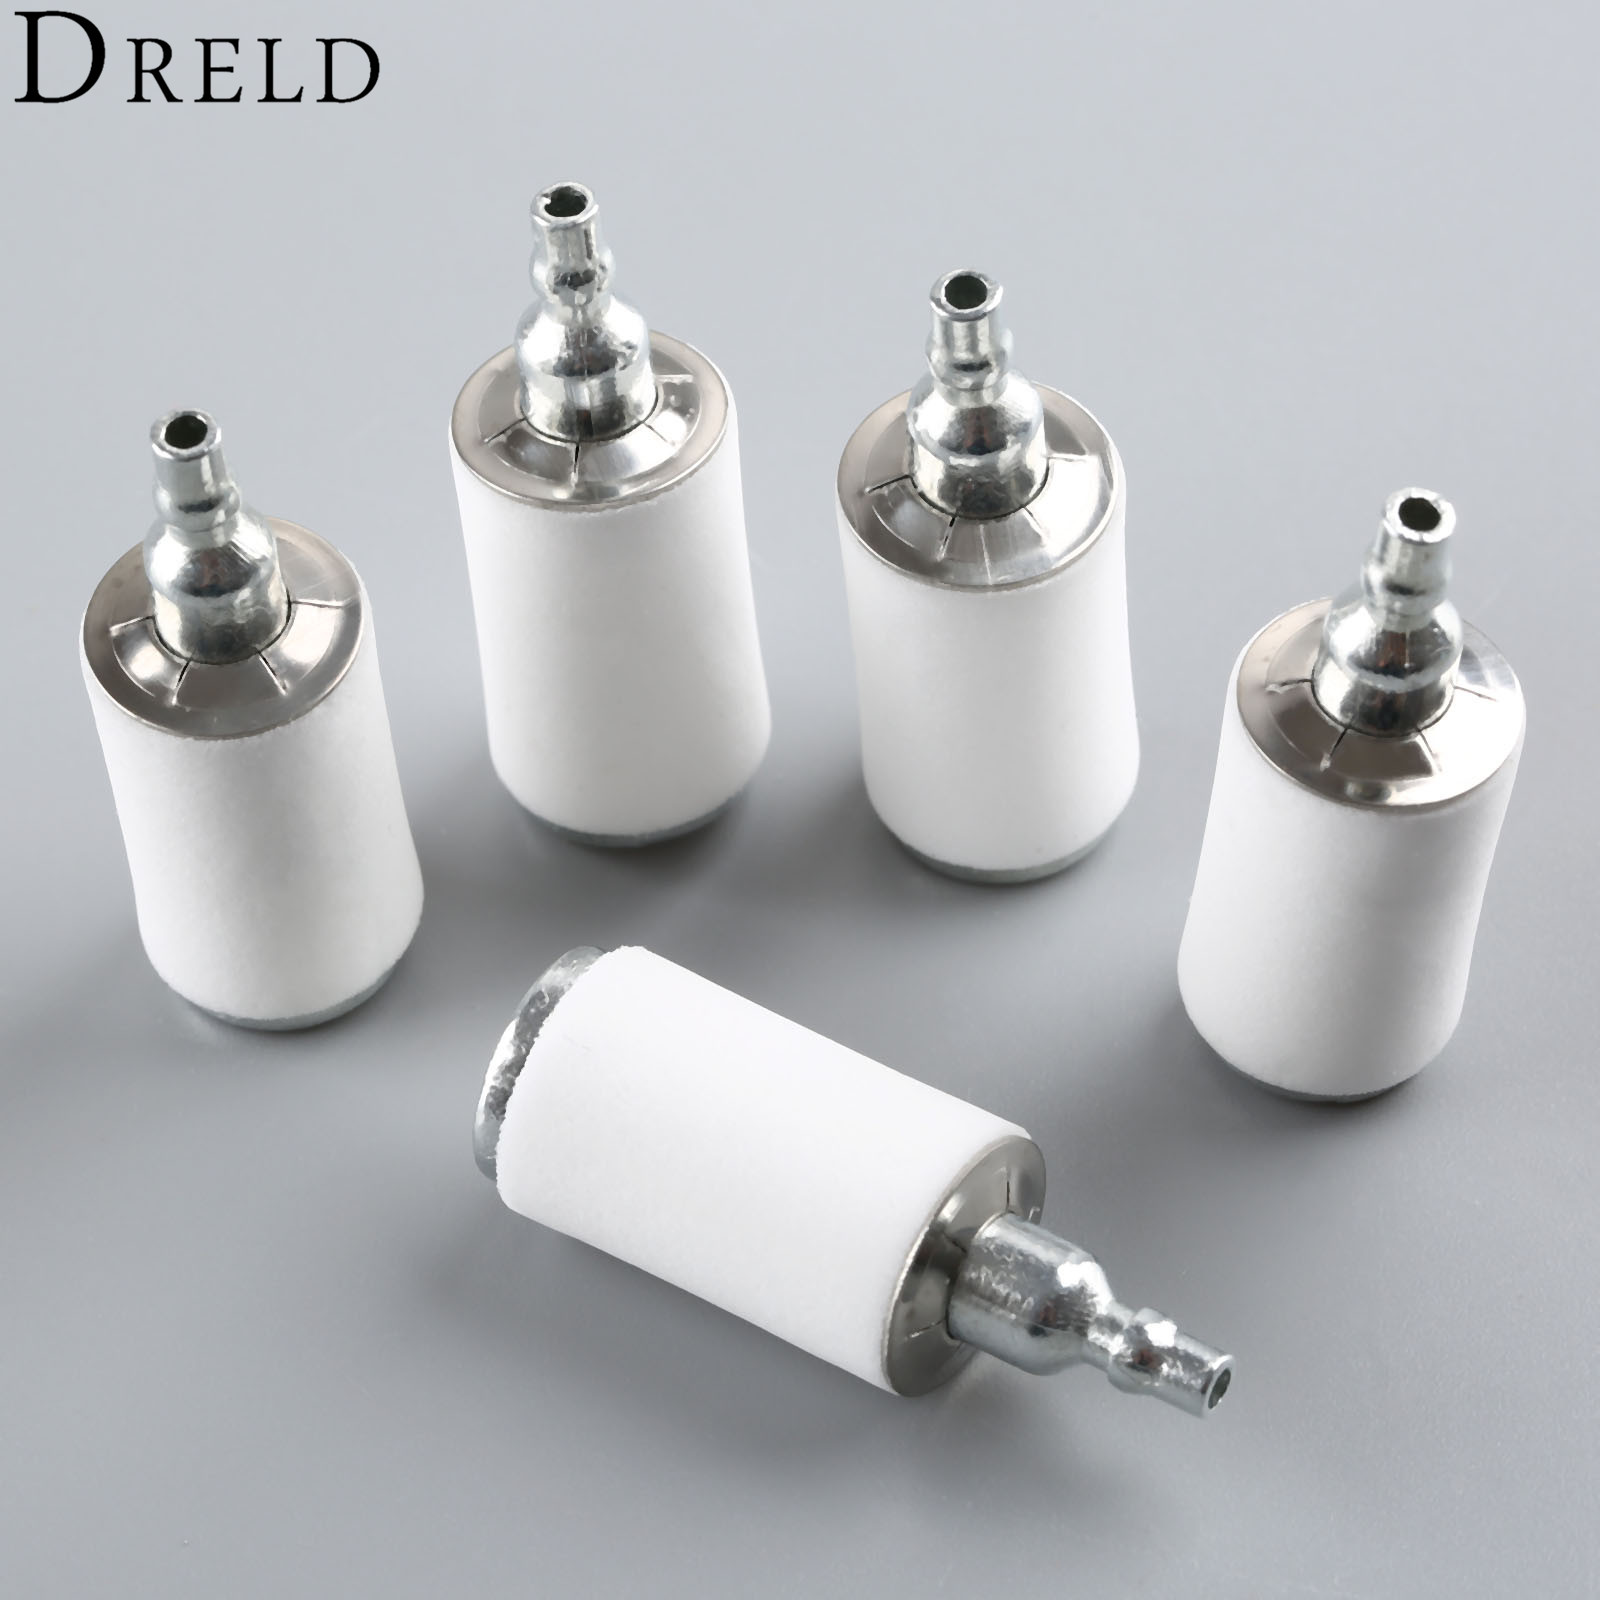 DRELD 5Pcs Gas Fuel Filter For Weedeater Poulan 2250le P1500 P3500 Ppb330 Craftsman Trimmer Chainsaw Blower